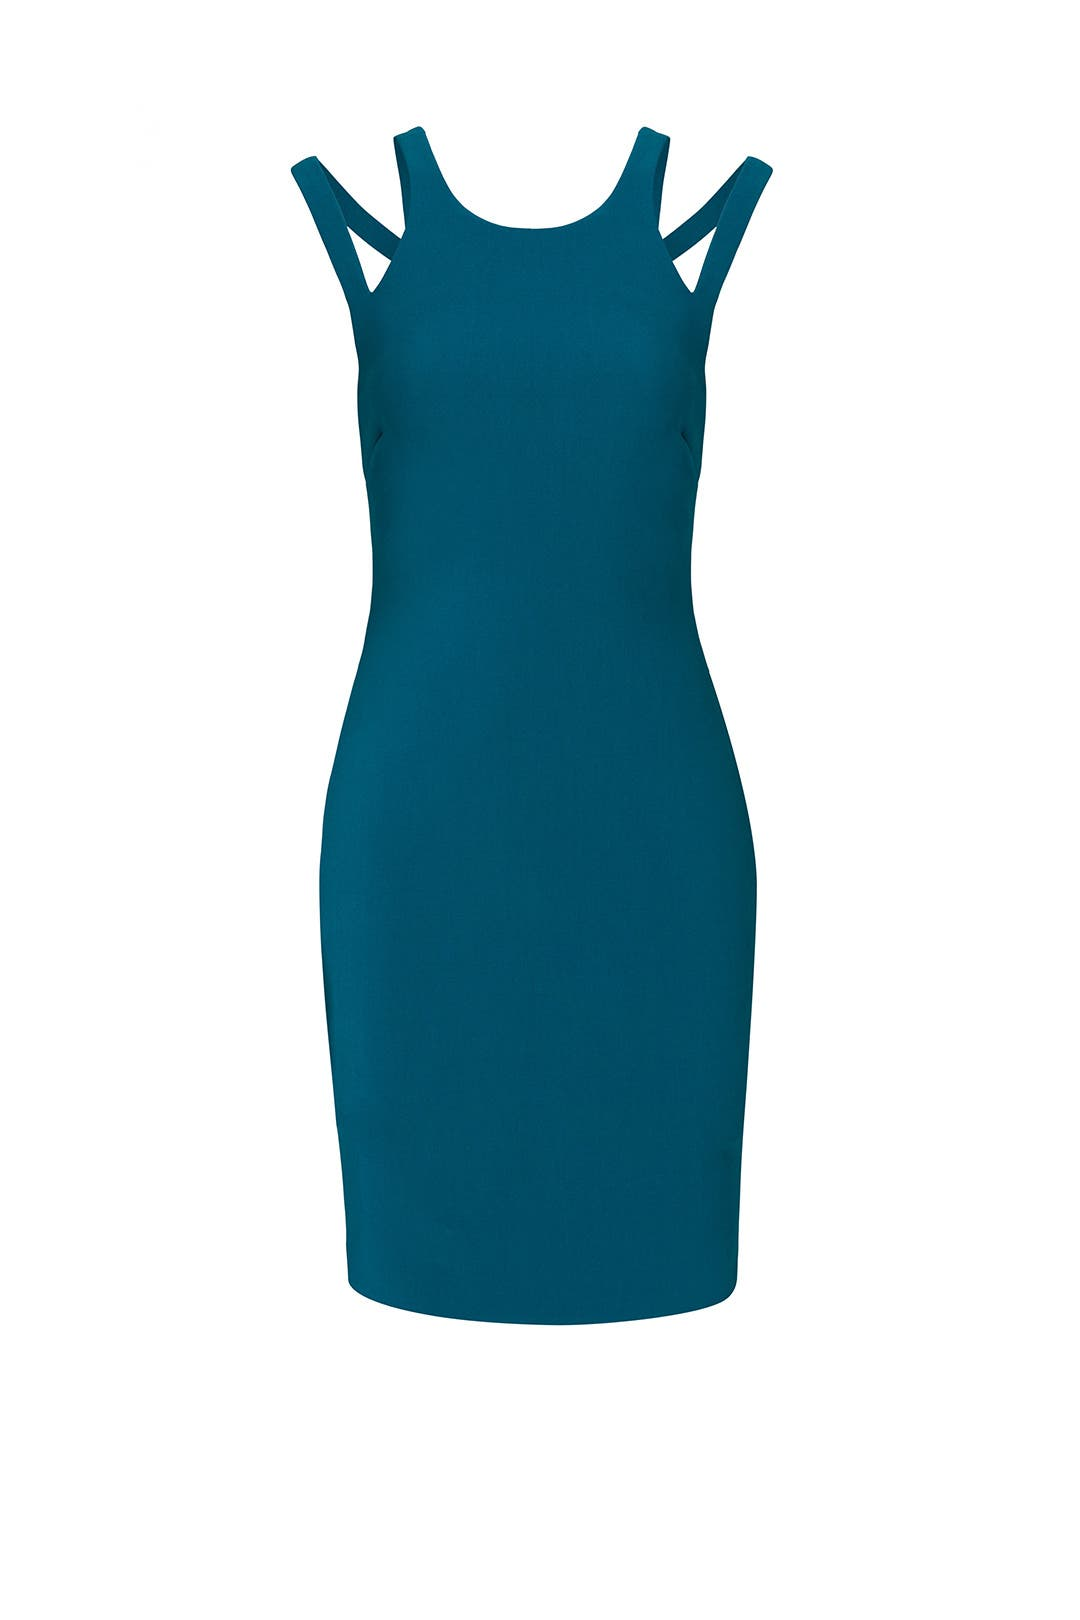 Myrtle Green Chrystie Dress by LIKELY for $30 - $50 | Rent the Runway